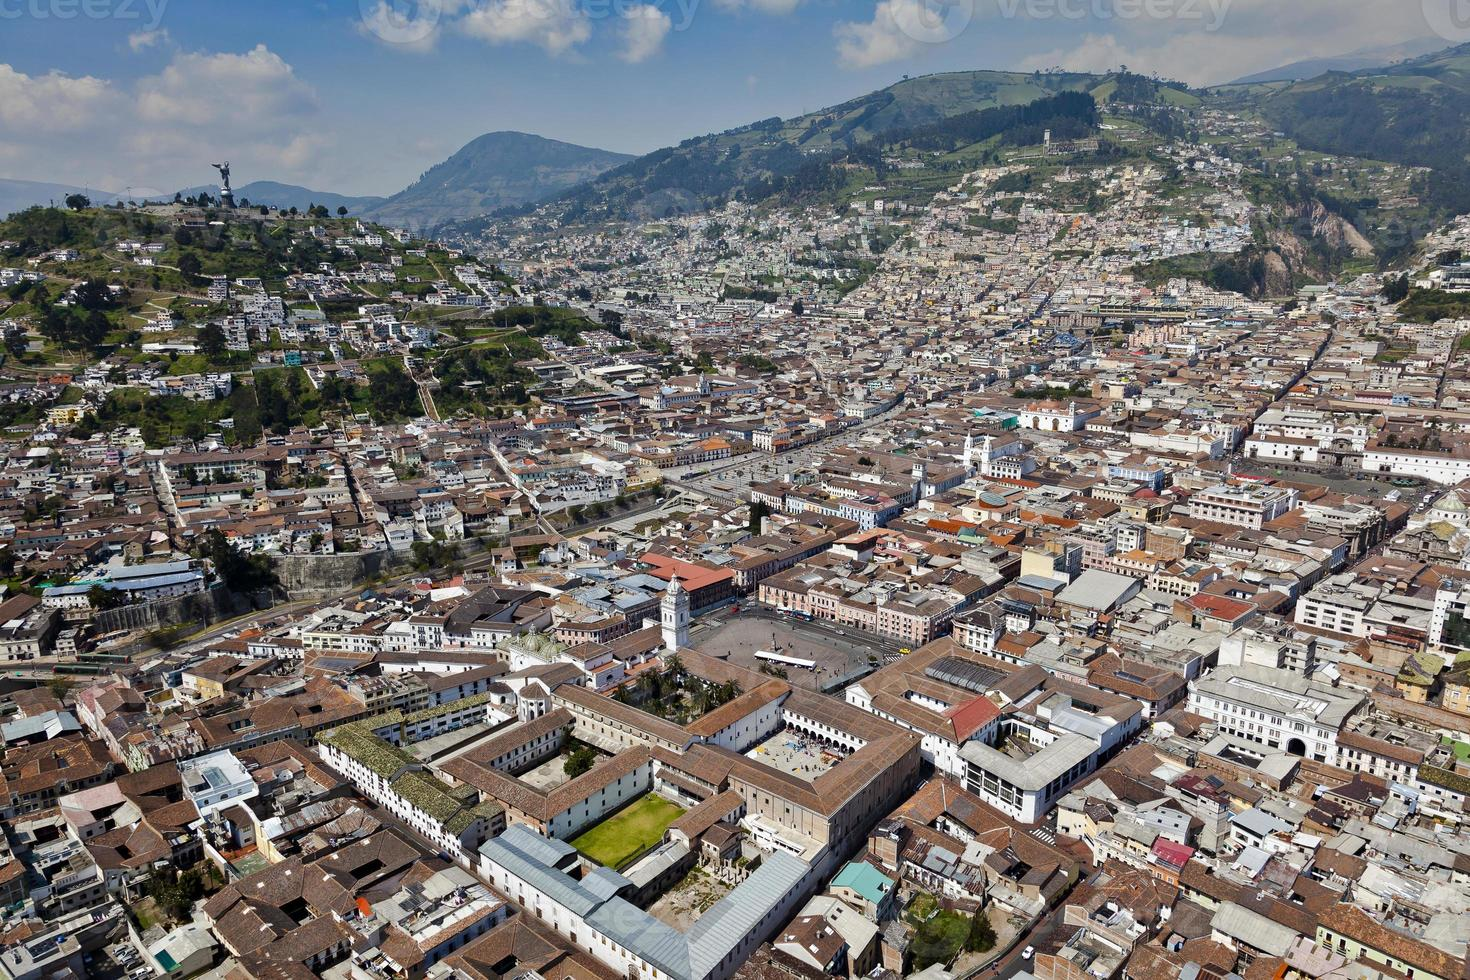 Quito colonial World Cultural Heritage, photo